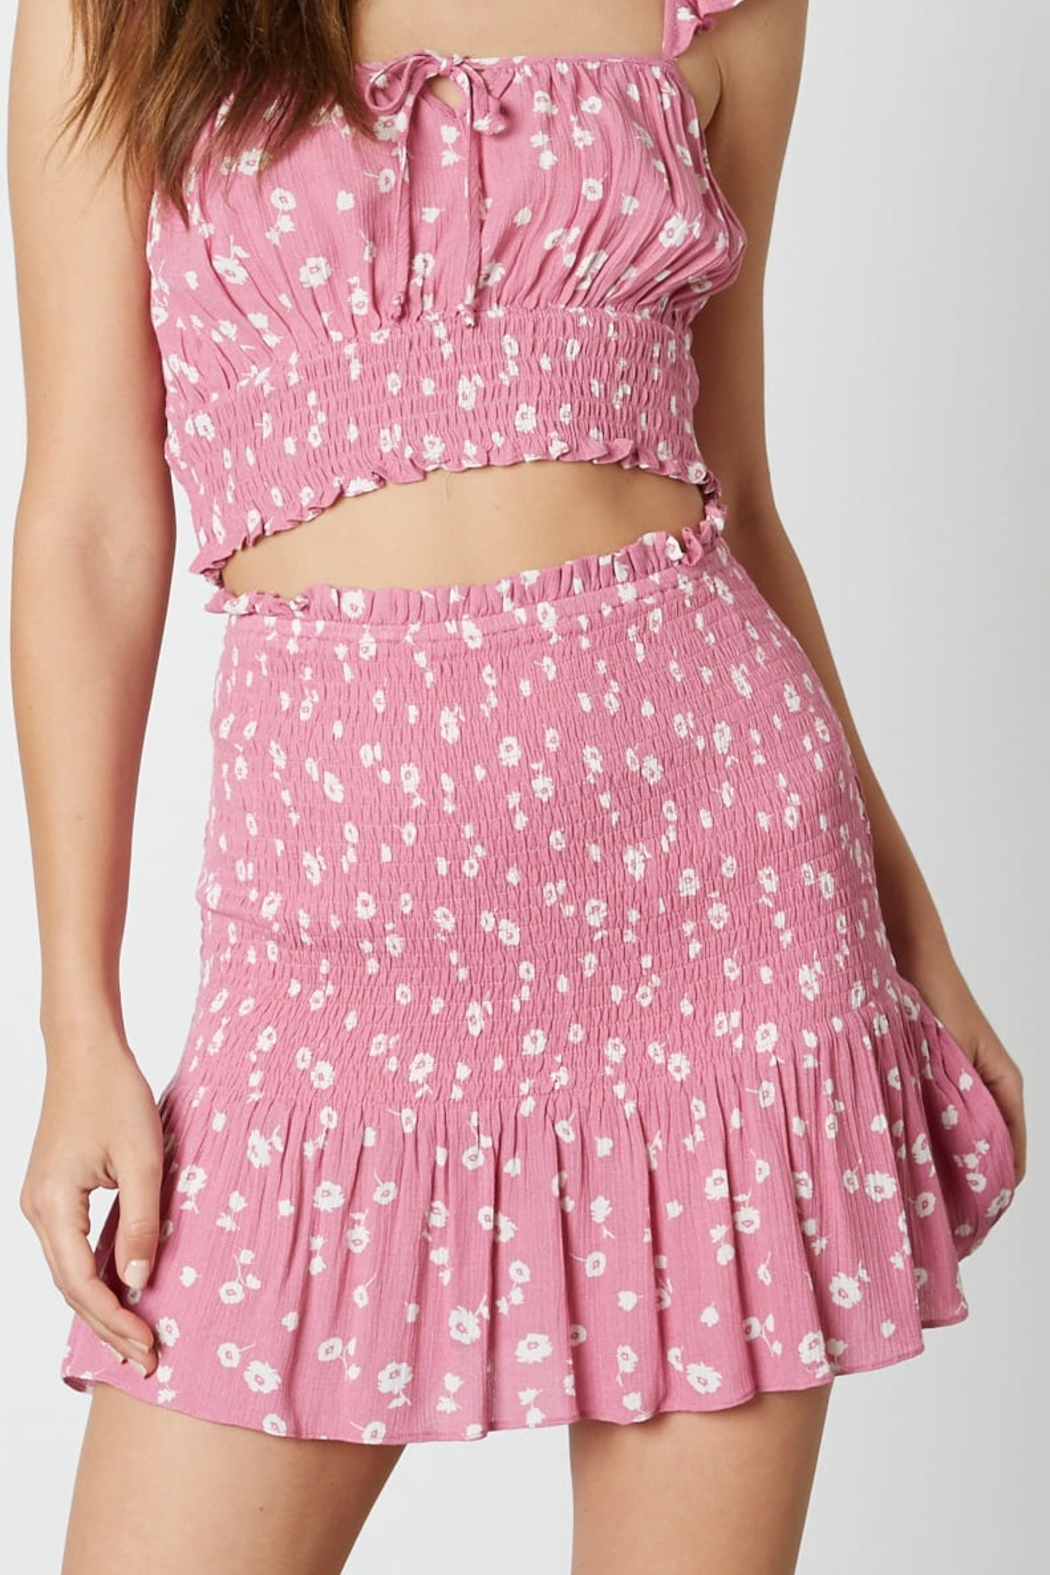 Cotton Candy  Smocked Floral Skirt - Main Image